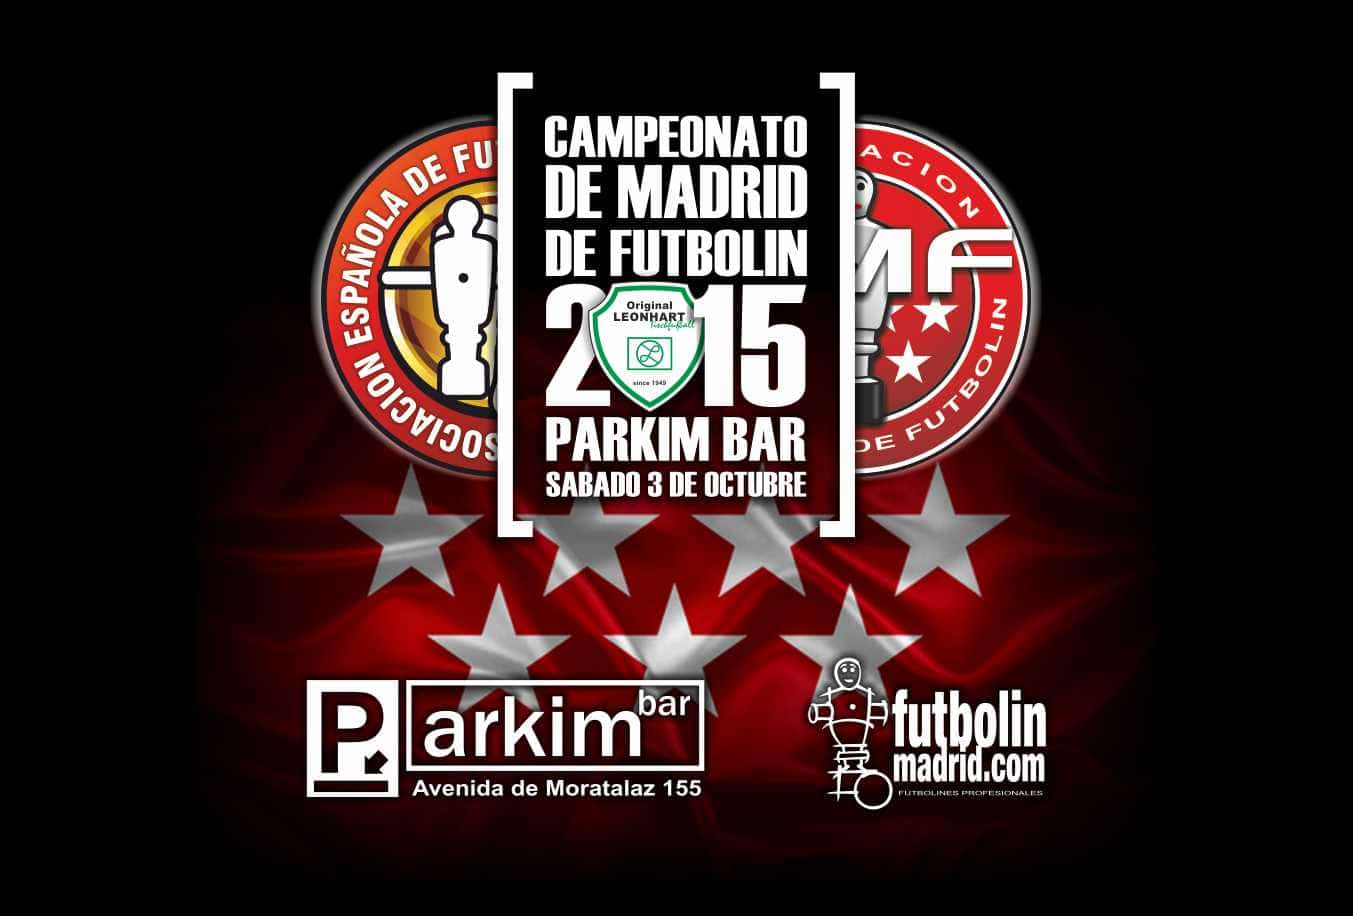 Video del campeonato de Madrid de futbolin 2015